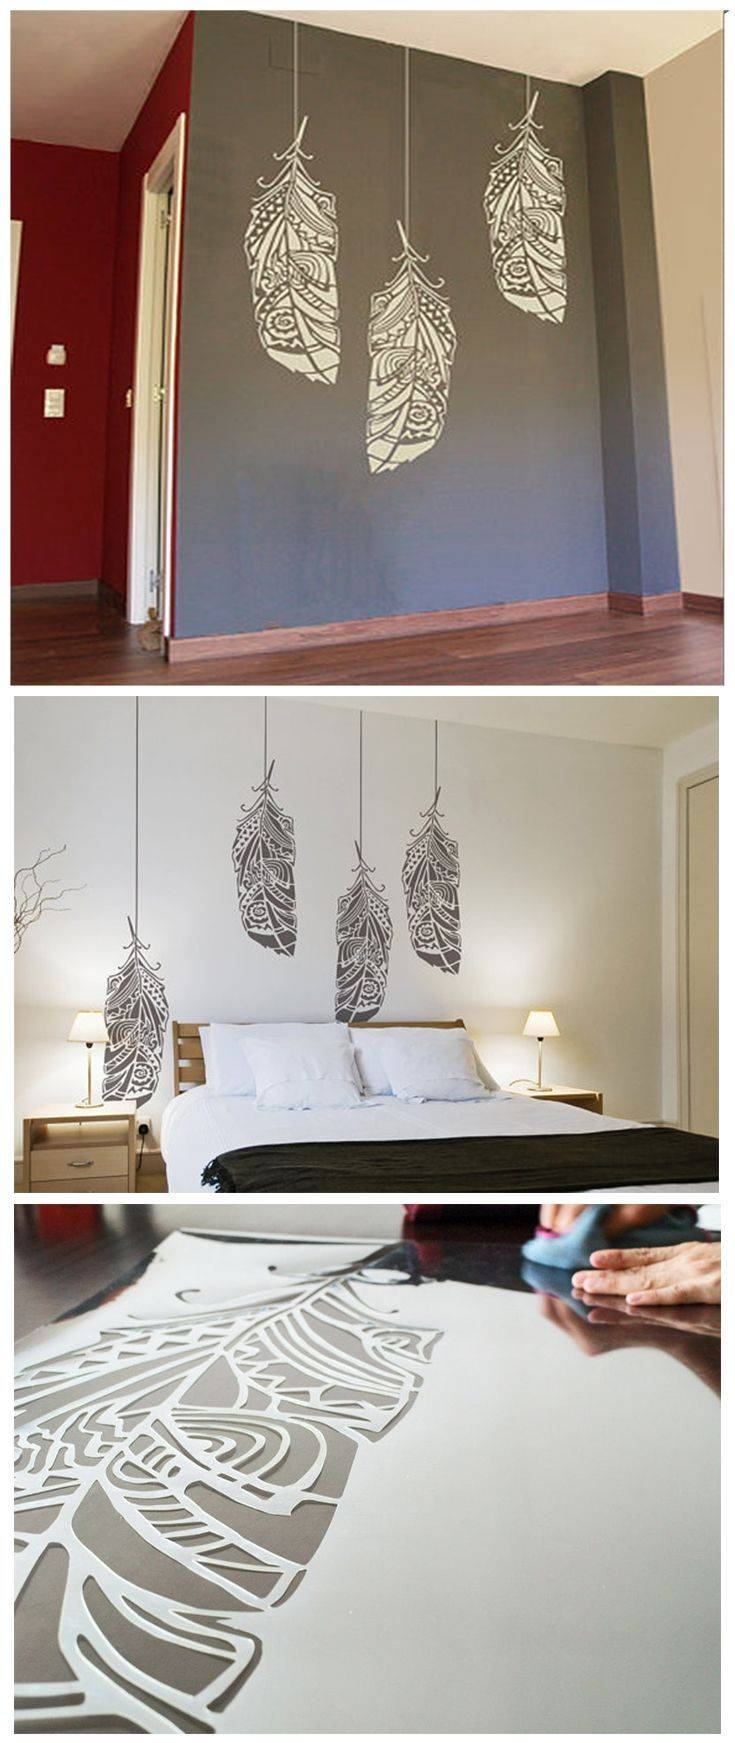 25+ Unique Feather Wall Art Ideas On Pinterest | Feather Wall Throughout Latest Pinterest Diy Wall Art (View 15 of 25)